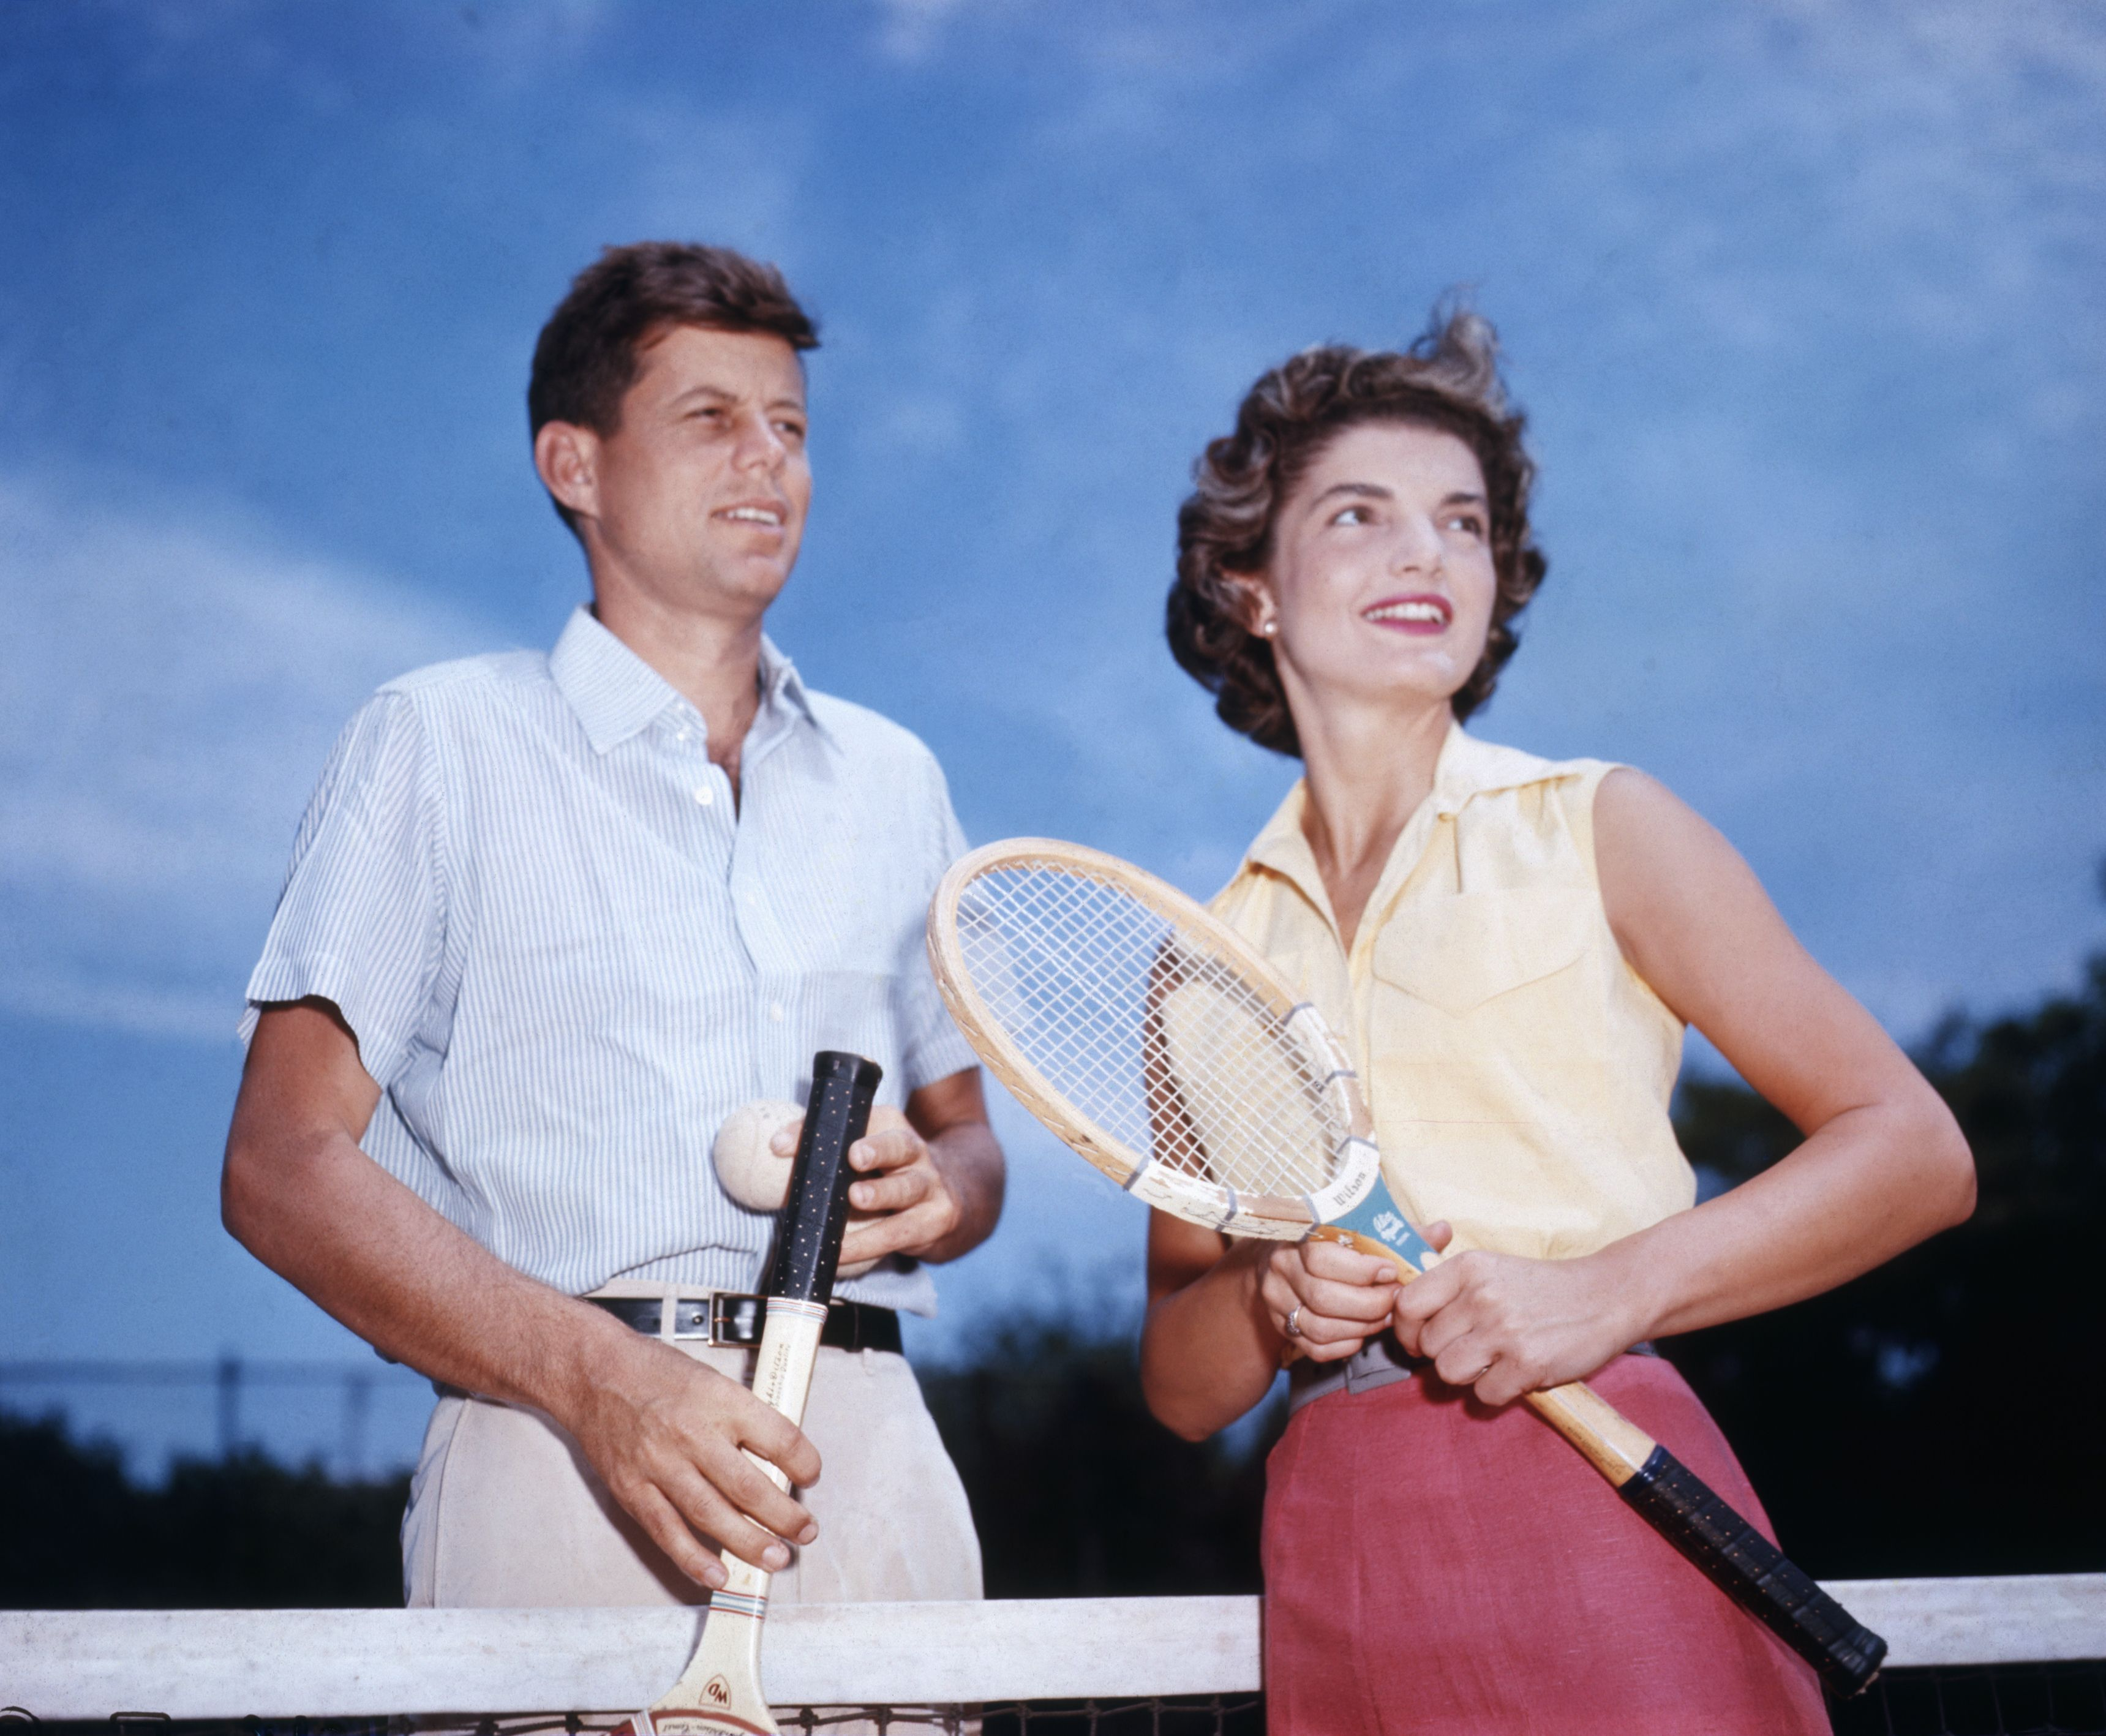 Jackie and her fiancée, John F. Kennedy, play tennis at his family's home in Hyannis Port, MA.